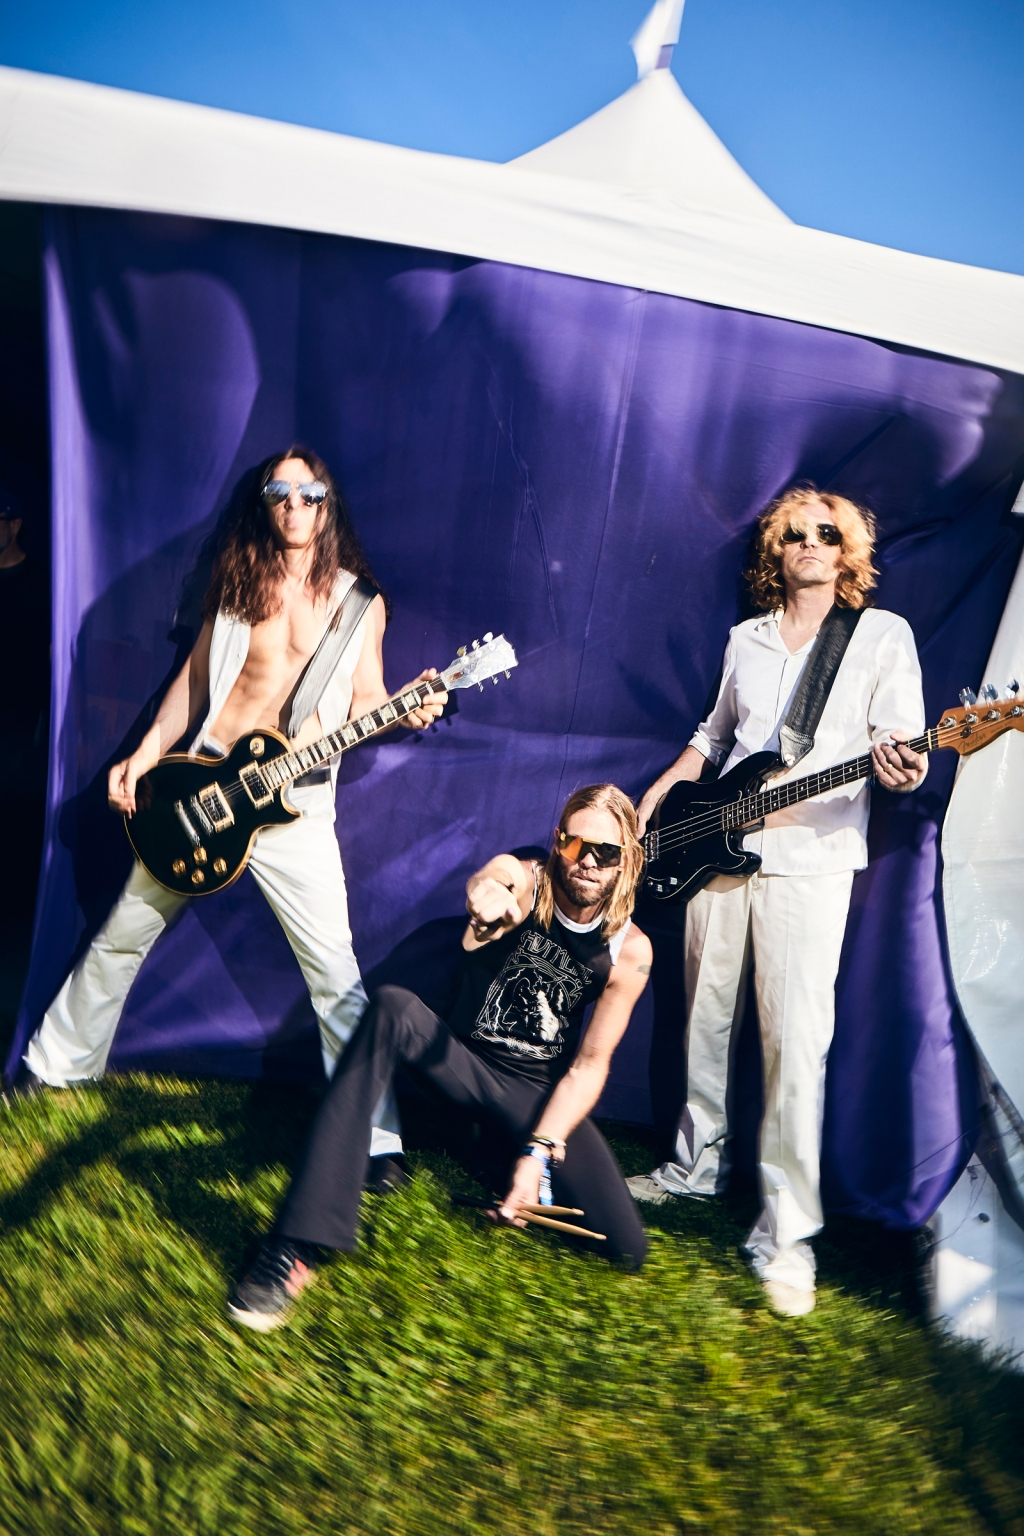 Chevy Metal poses backstage at BottleRock in Napa Valley, CA on May 25th, 2019.